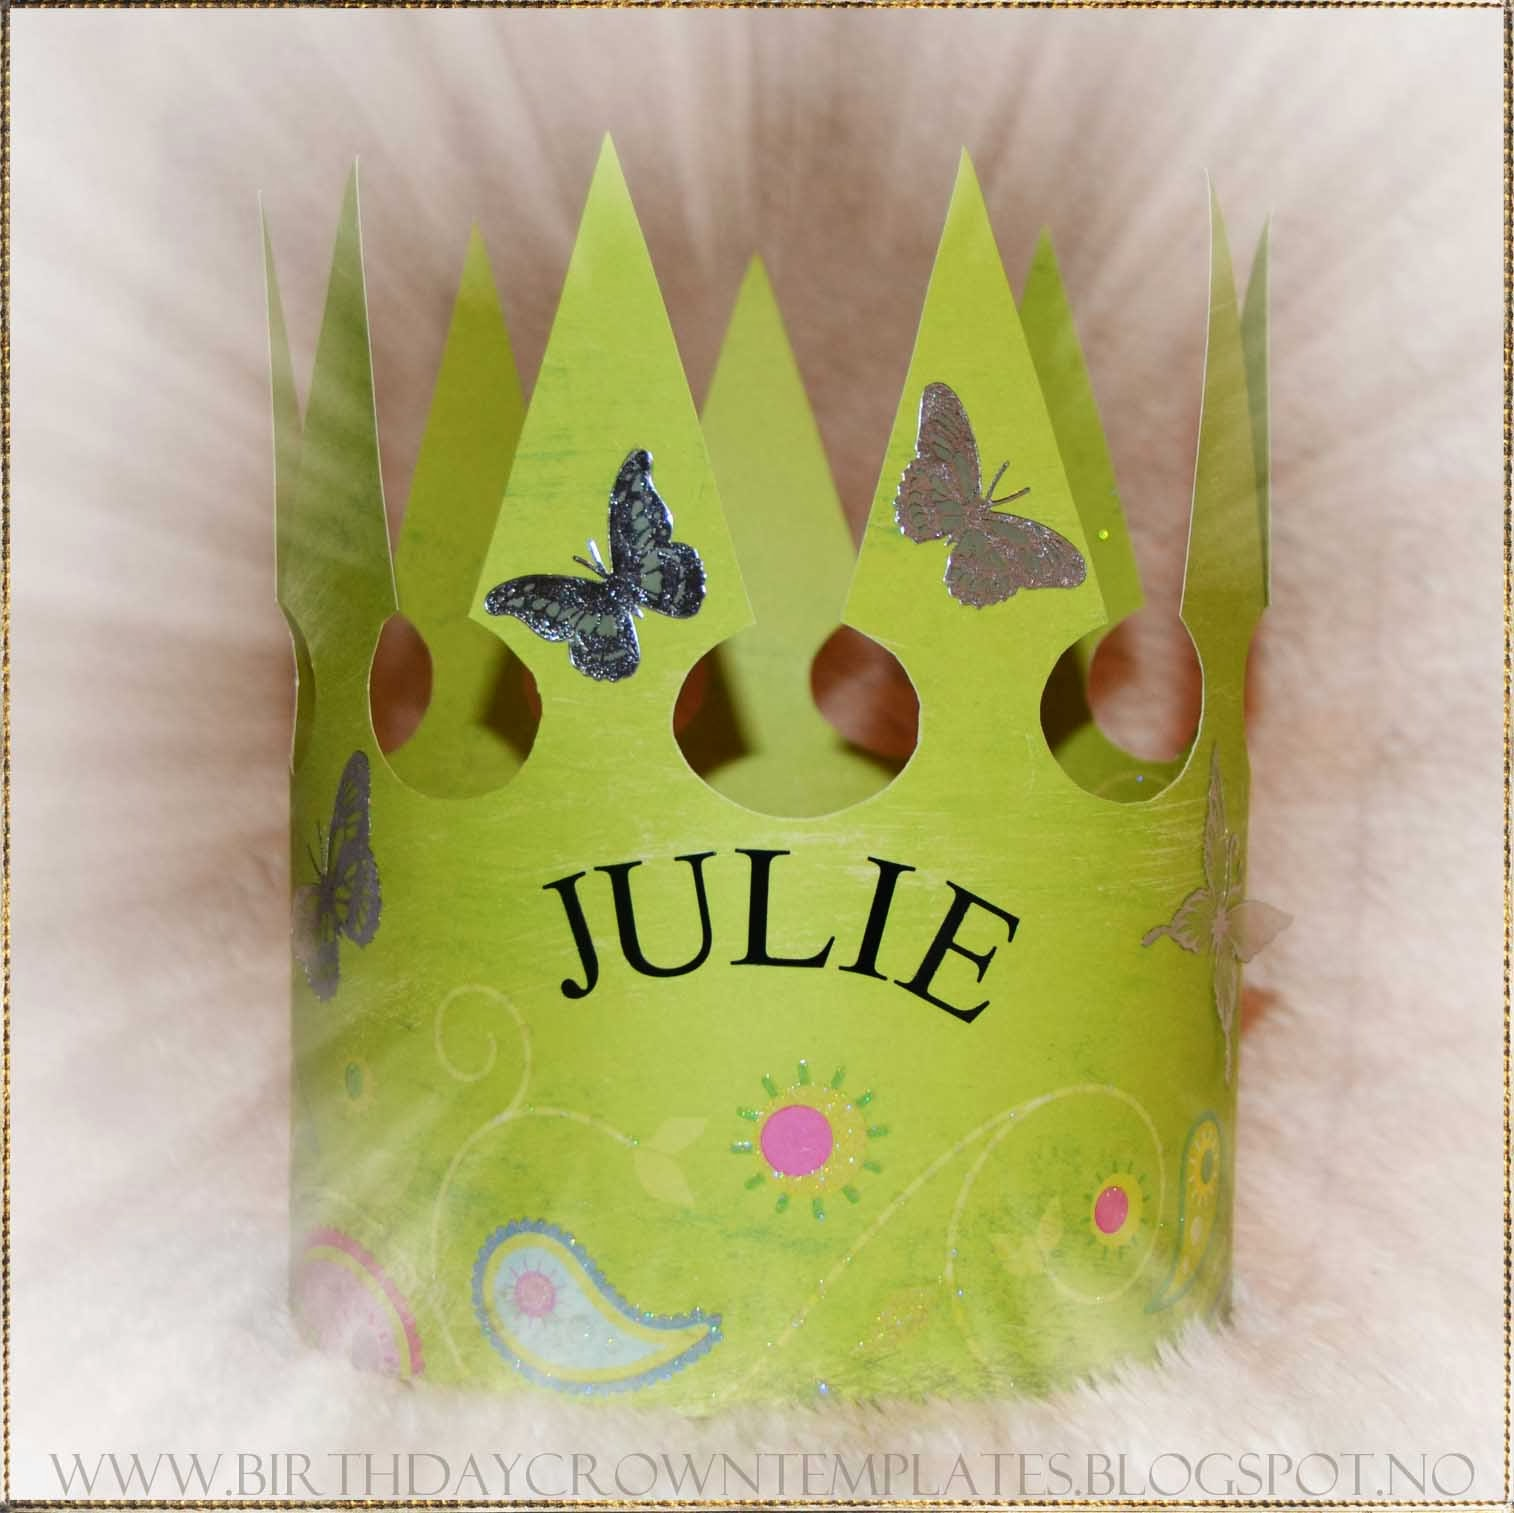 ... Birthday Crown template! | Printable birthday crown template for free